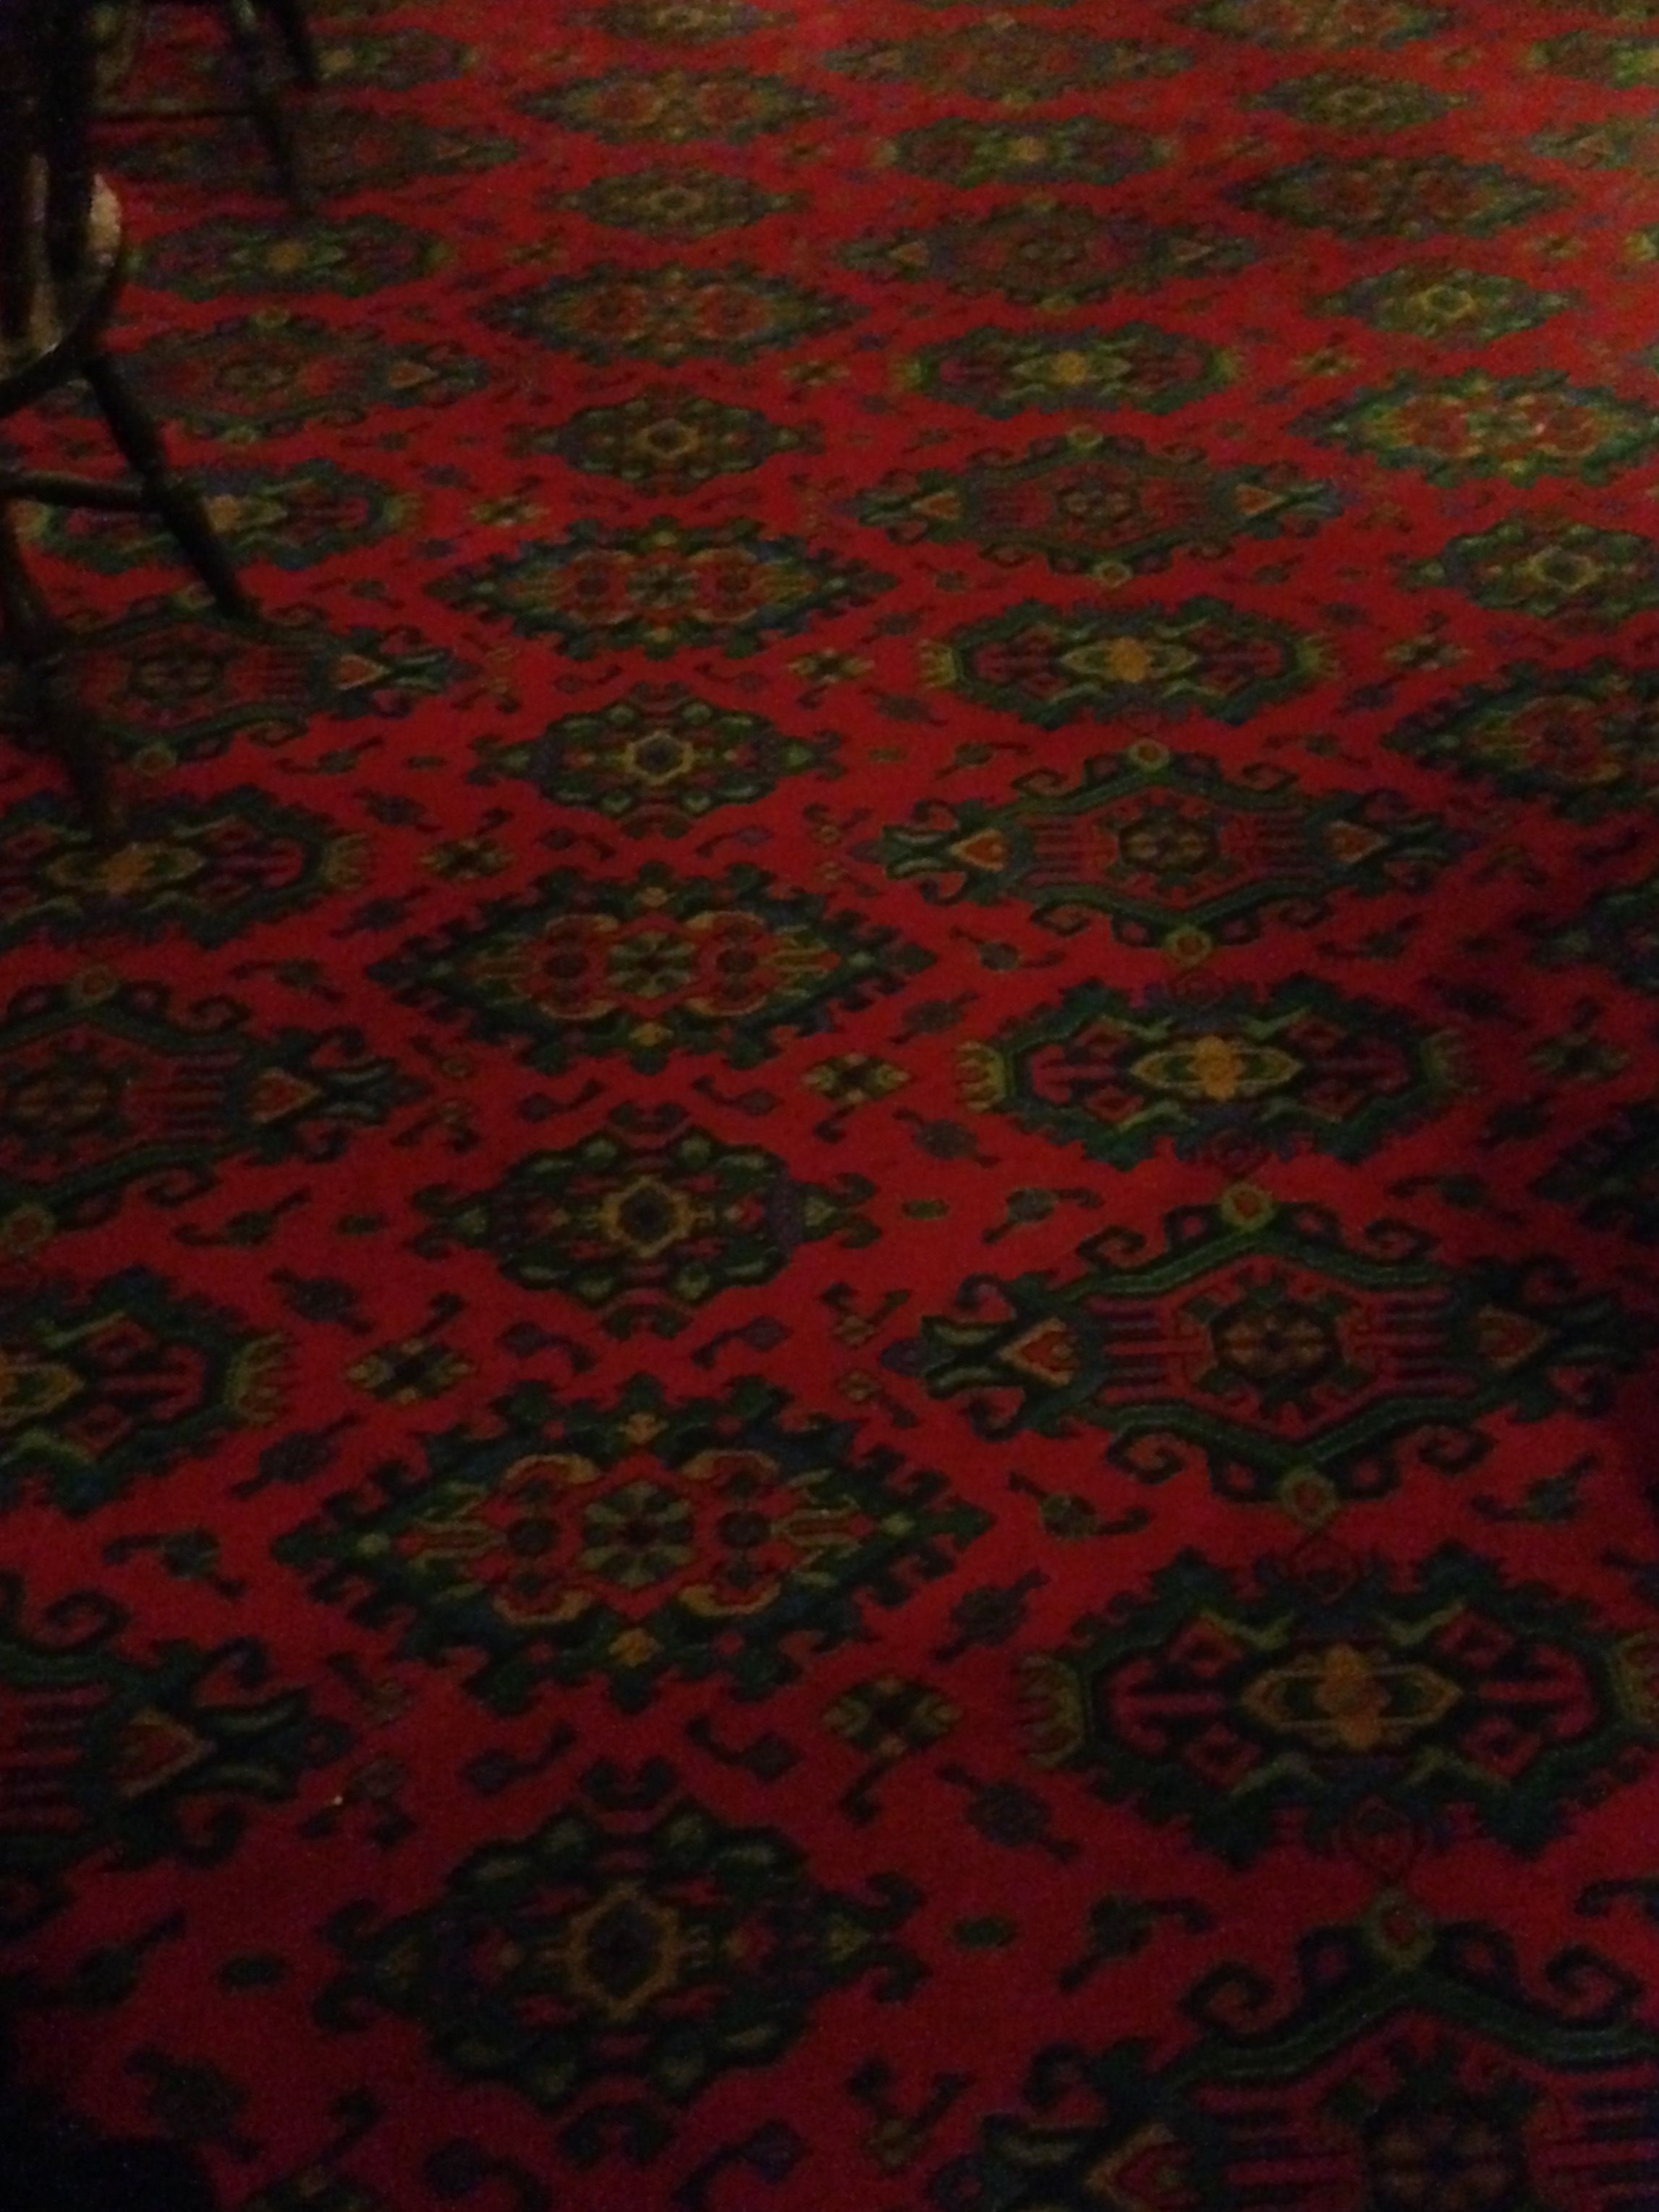 British Pub Carpet Found In The Stilton Cheese Somerby Leicestershire England Dec 2017